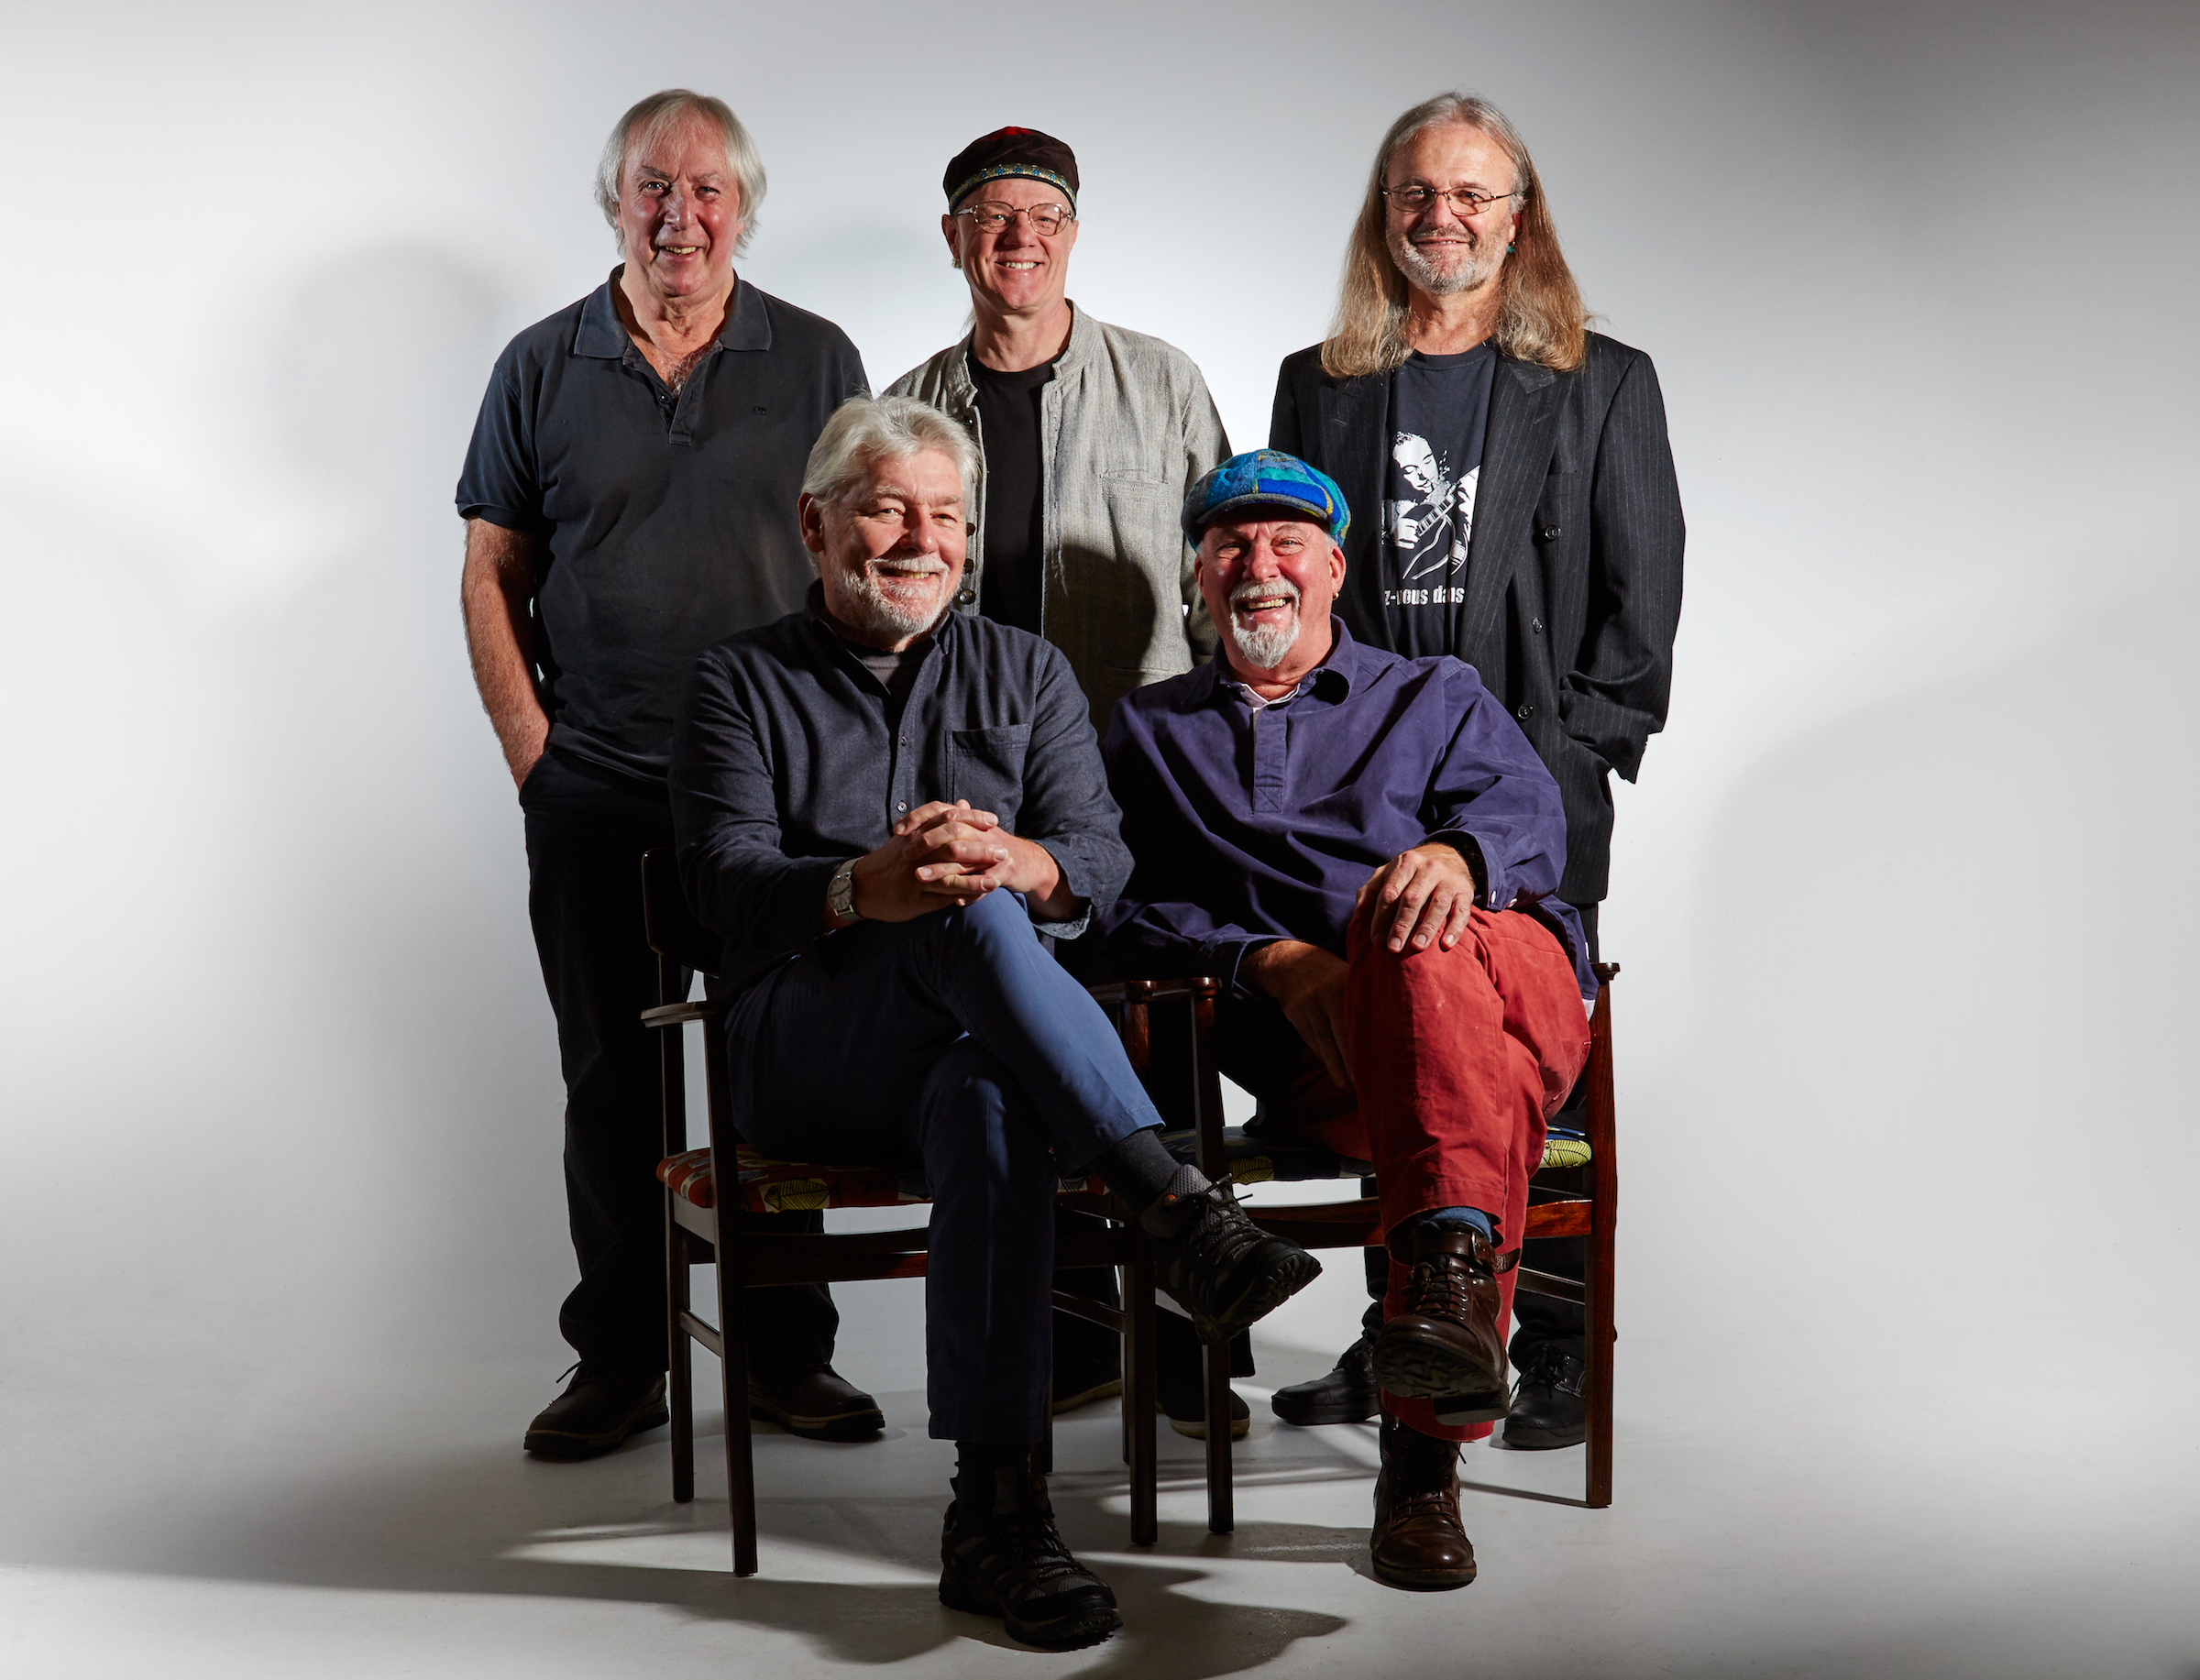 Legendary folk-rock band Fairport Convention will perform at Settle Victoria Hall. Picture by Ben Nicholson